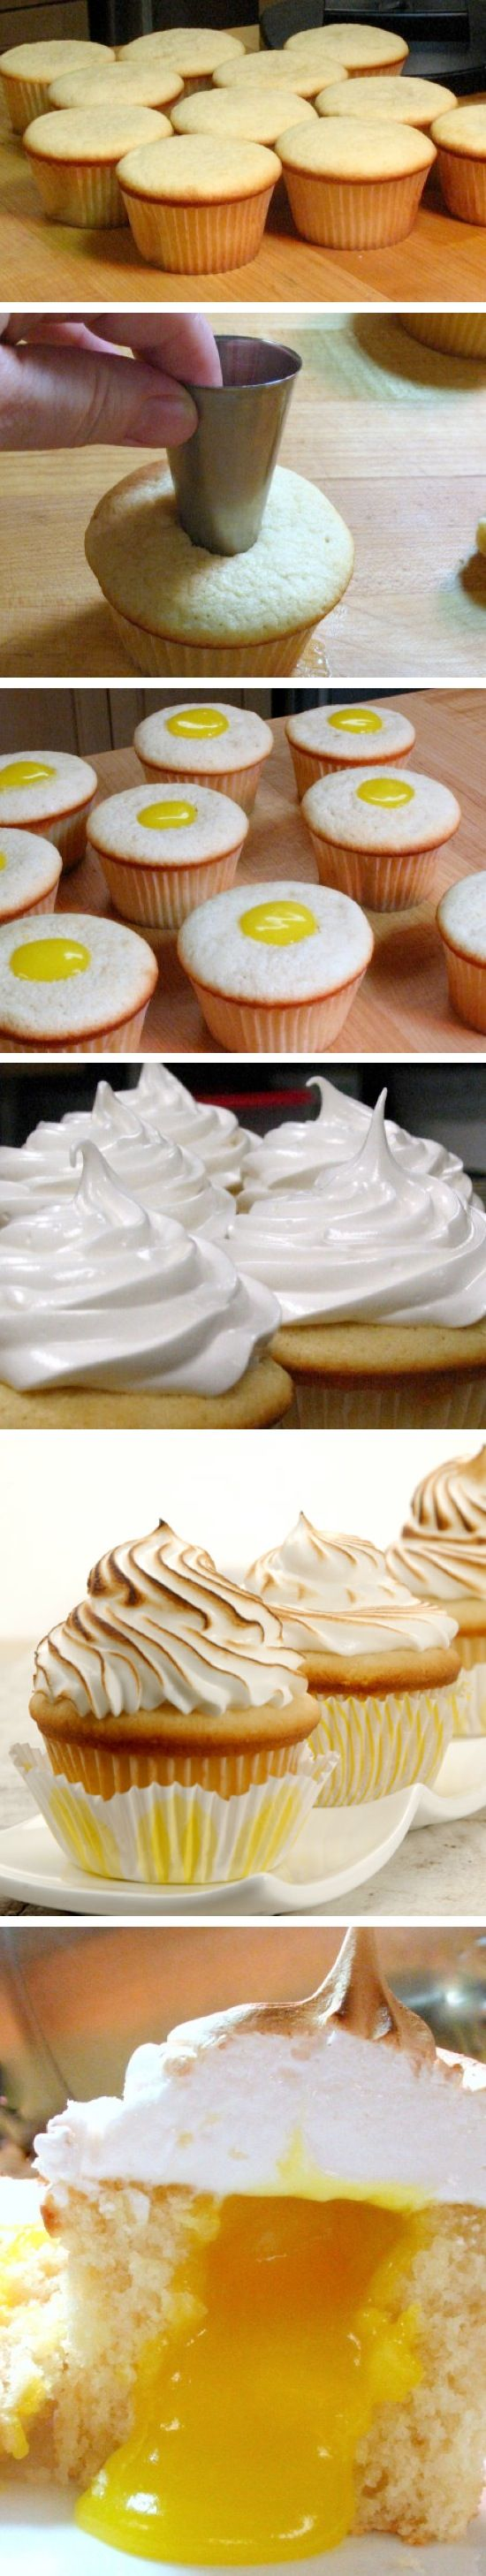 TRY IT Lemon Meringue Cupcakes. Great blog post. There is also a link to the MICROWAVE LEMON CURD! amazing and will have to try this! And by the way, the recipe for the cupcake itself looks wonderful. Cant wait to try.